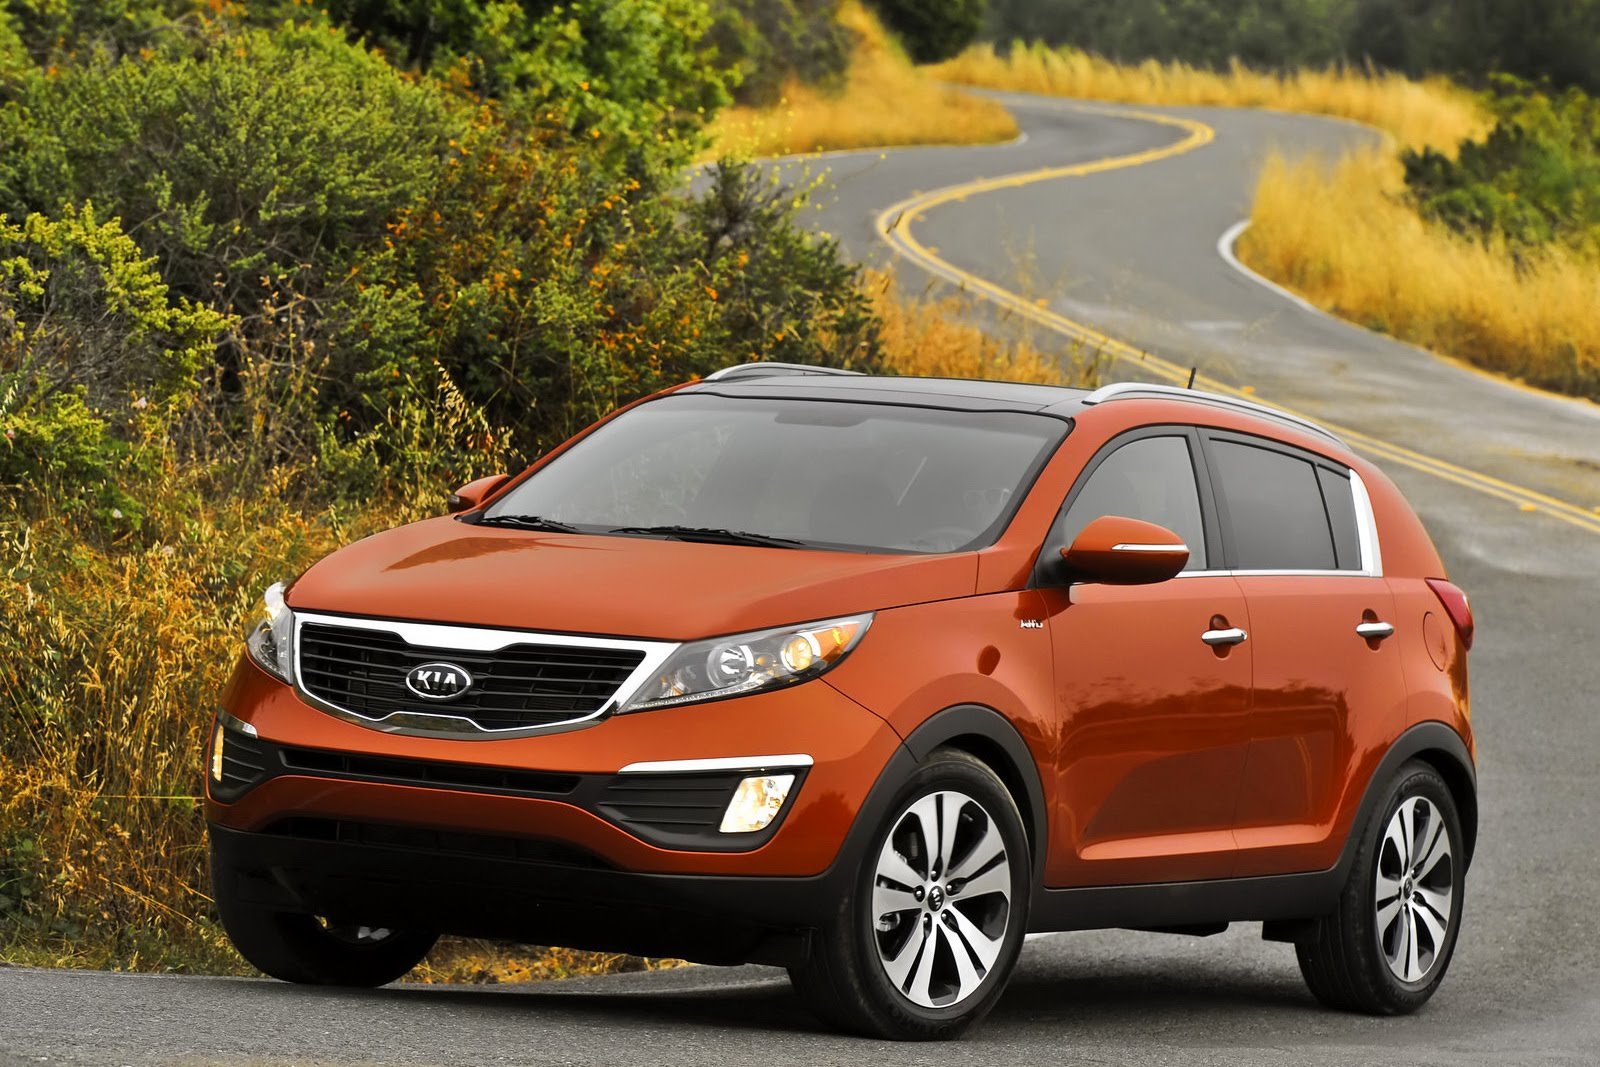 2011 kia sportage pricing released starts from 18 990 carscoops. Black Bedroom Furniture Sets. Home Design Ideas